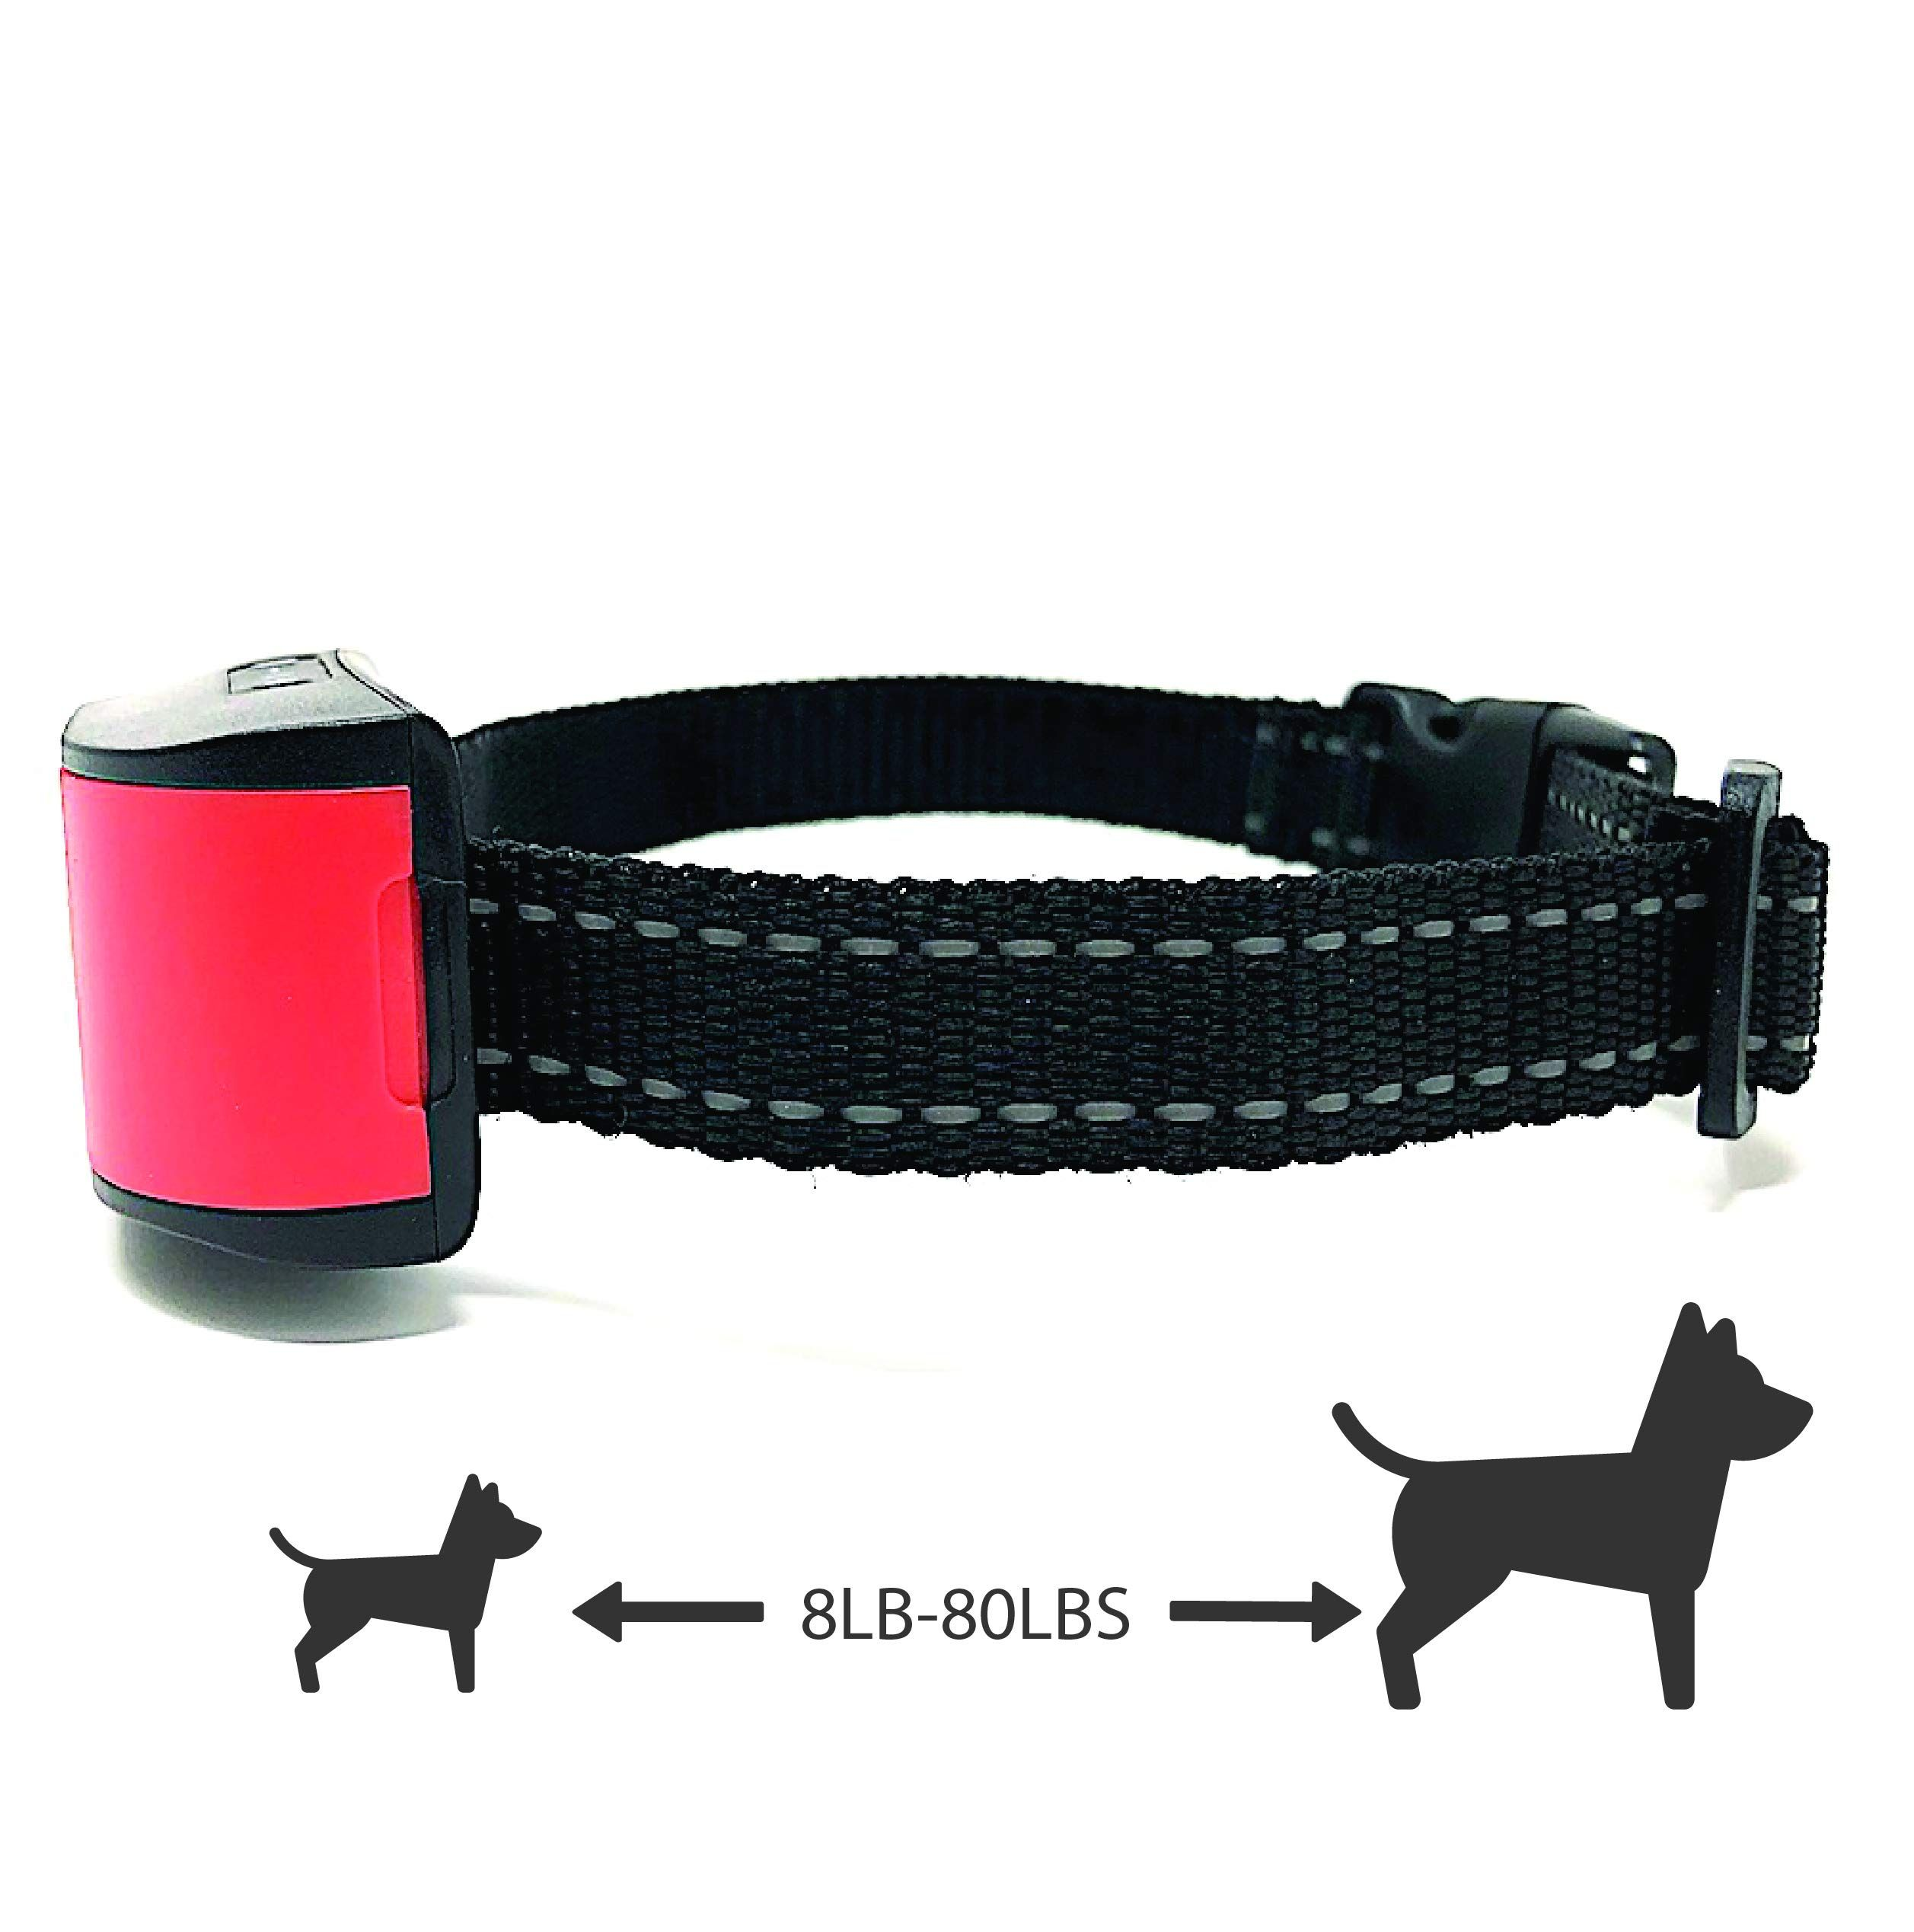 Topdale Bark Collar Small Dog And Medium Dogs Petsafe Barking Collar With No Shock Vibration And Sound Only Huma Bark Collars For Dogs Medium Dogs Dog Barking